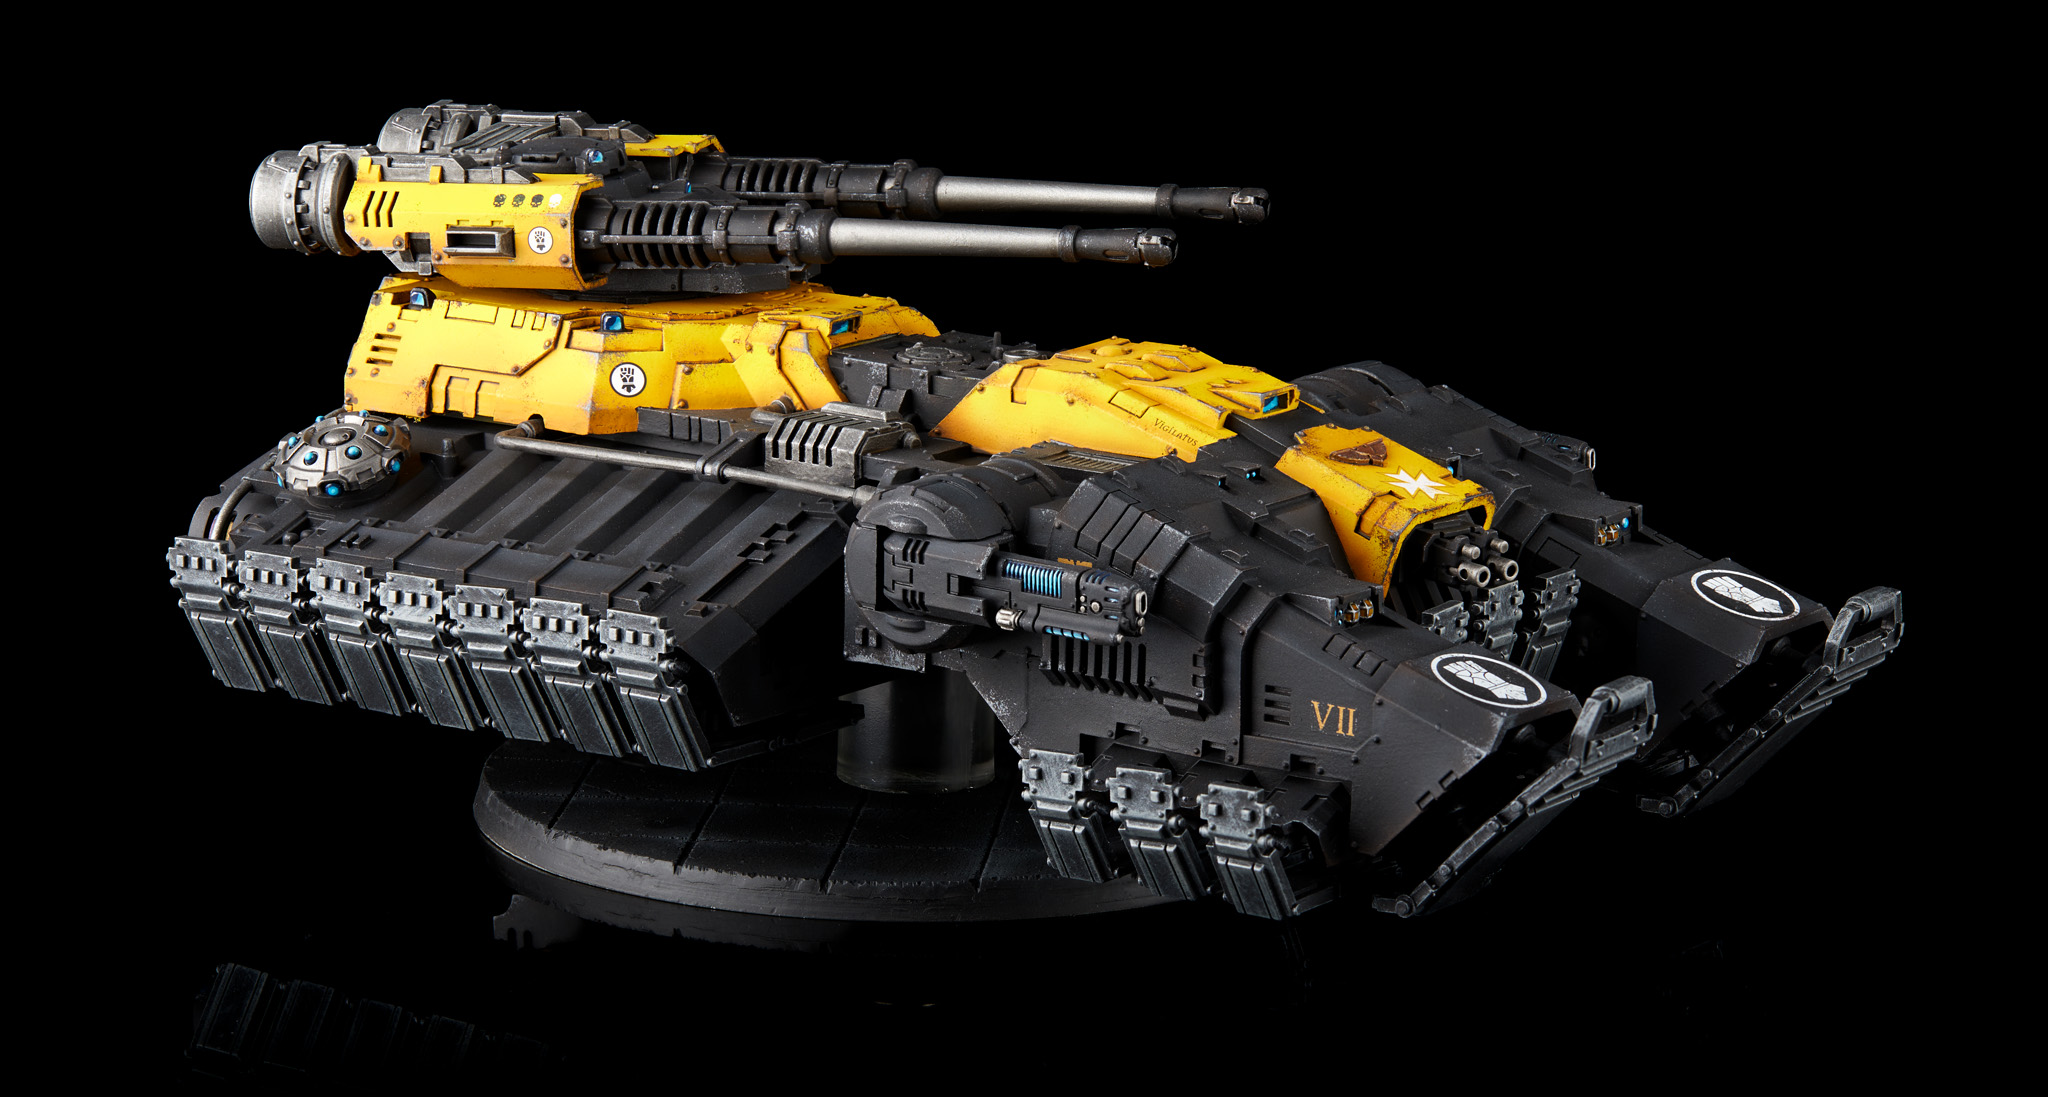 Imperial Fists Astraeus Super-heavy Tank